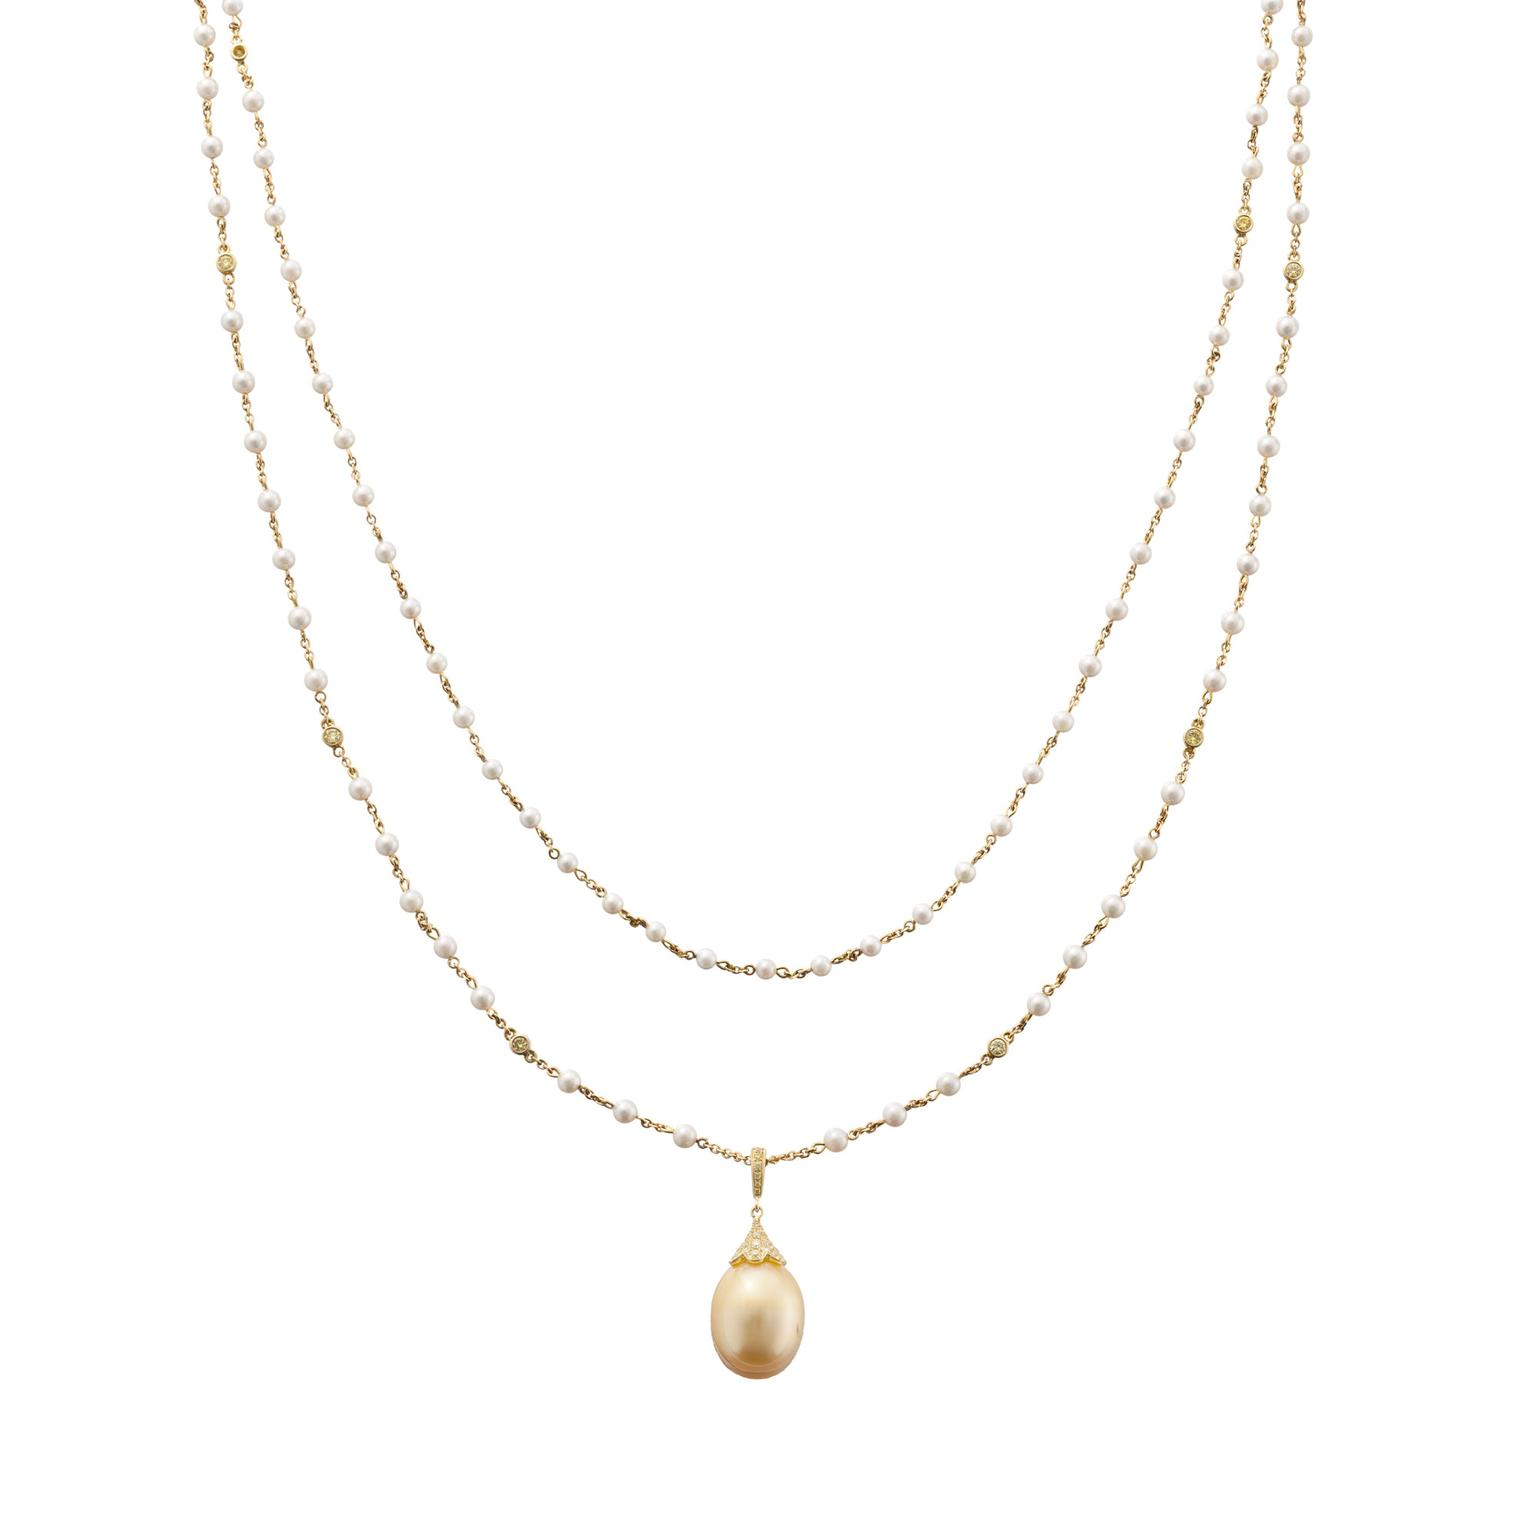 Boodles pearl necklace